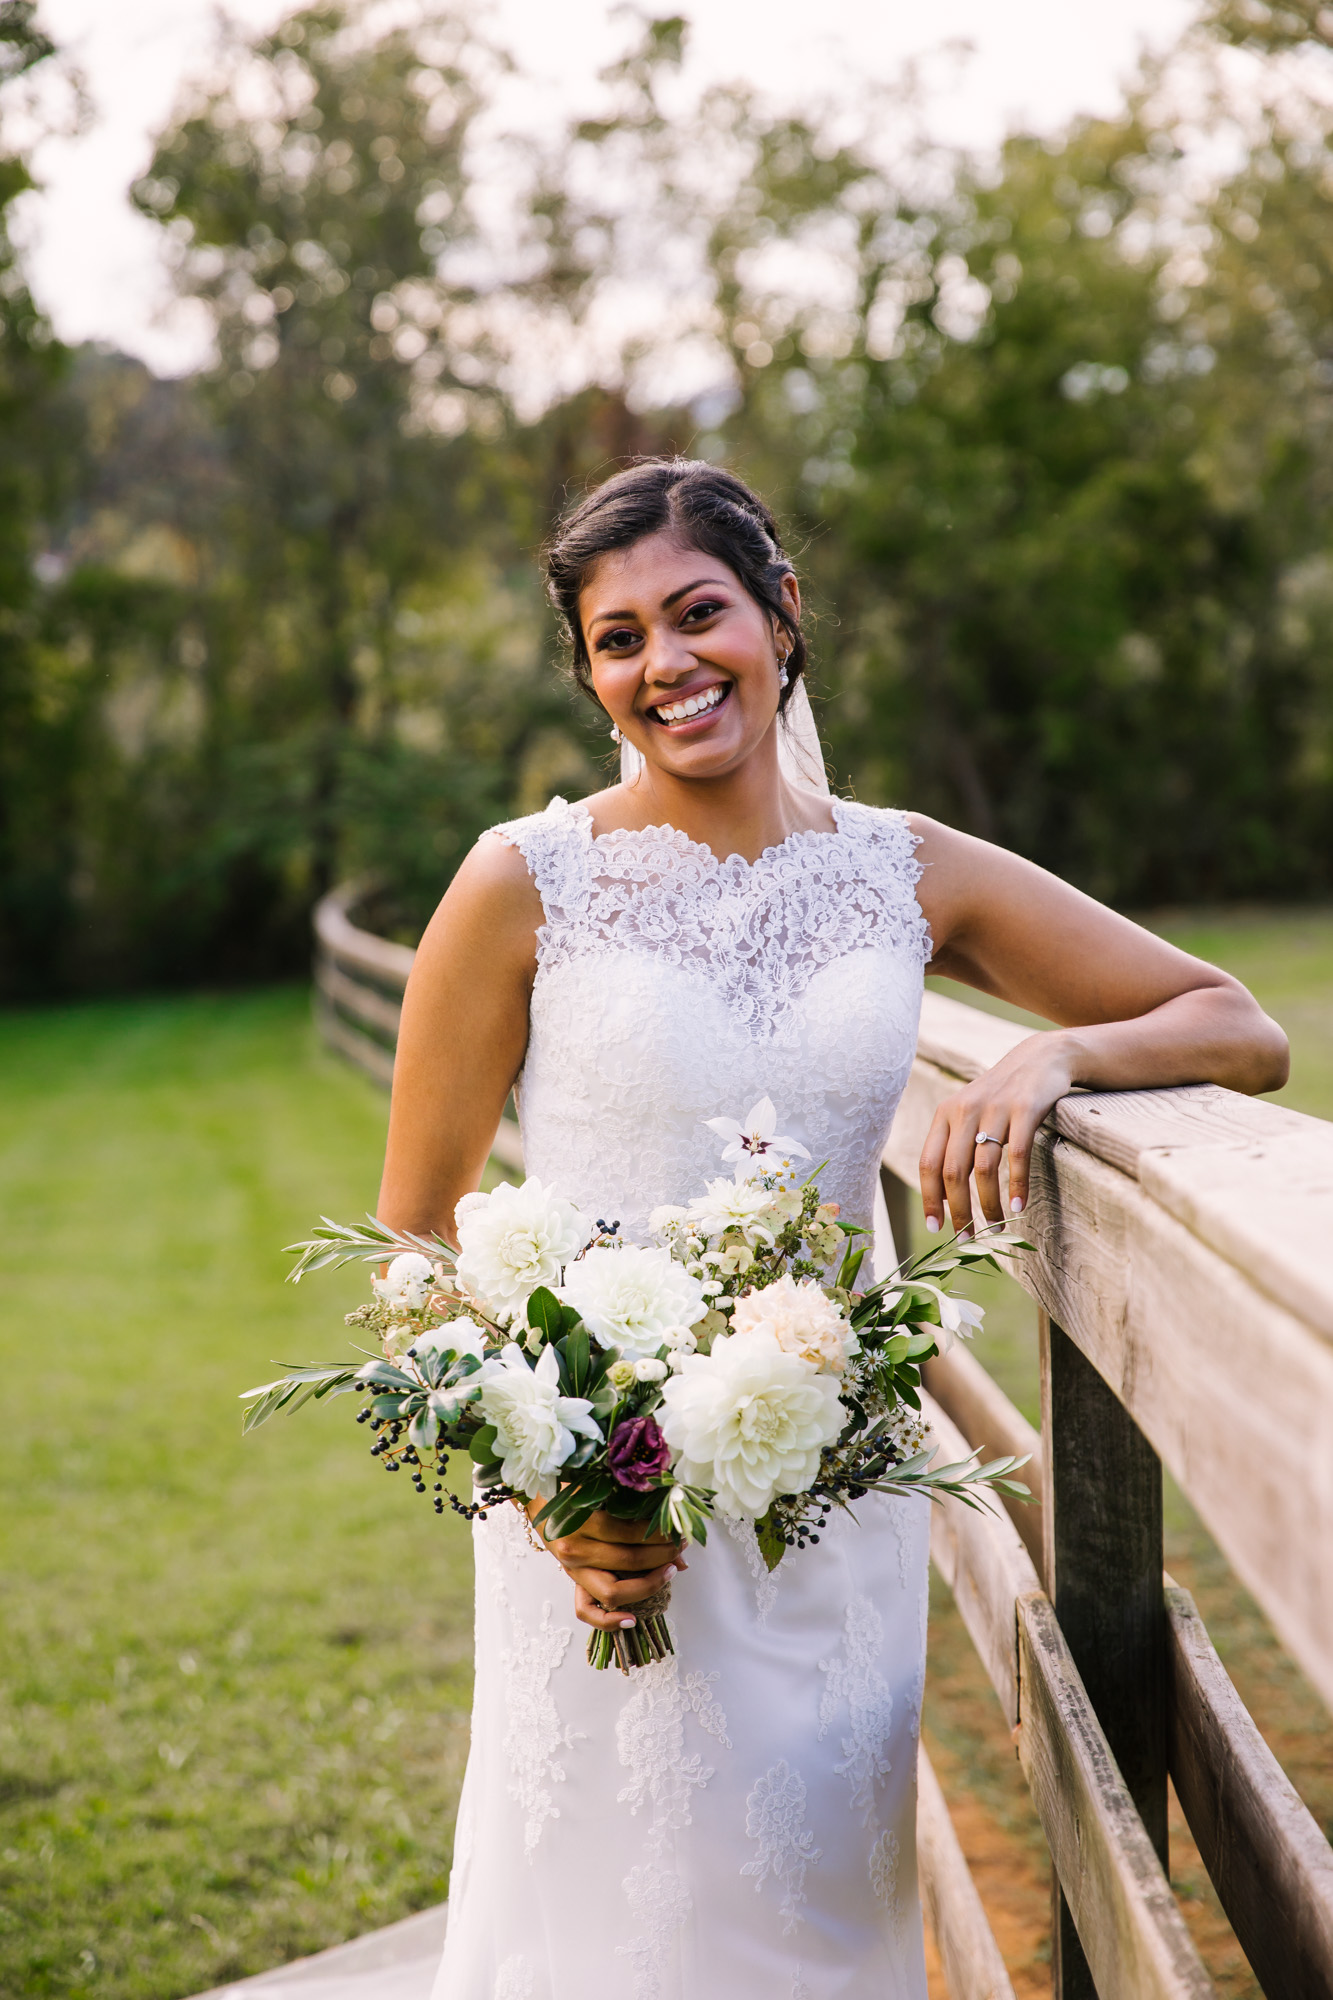 Waynesville NC Wedding Photography | Bride Solo Portrait Laughing